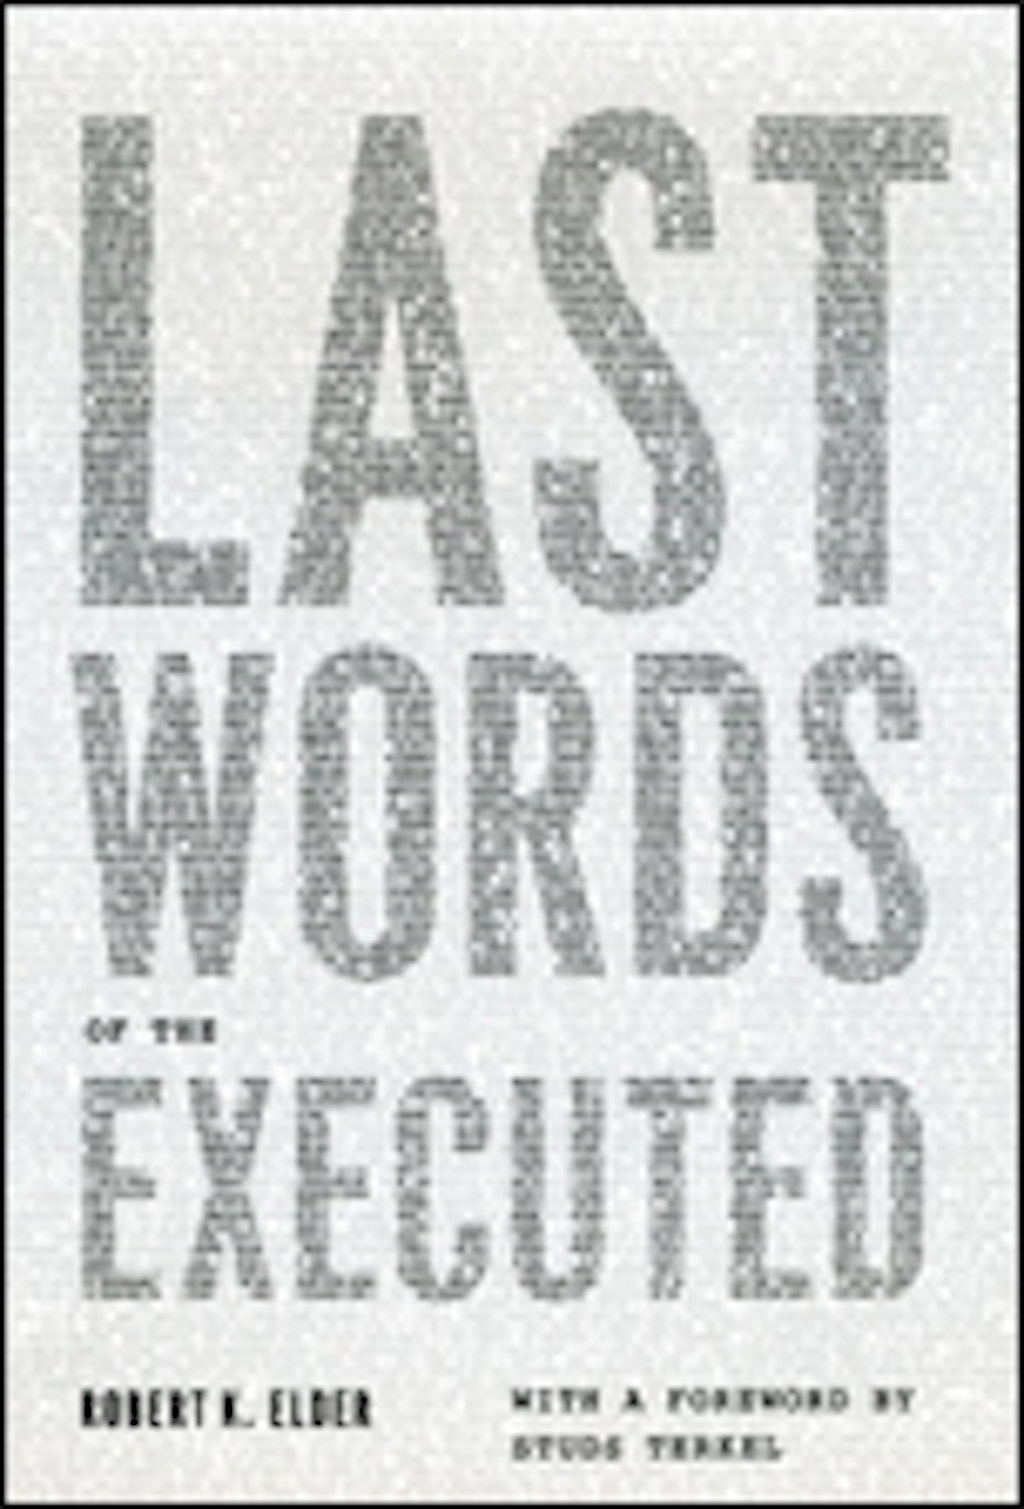 BOOKS: Last Words of the Executed